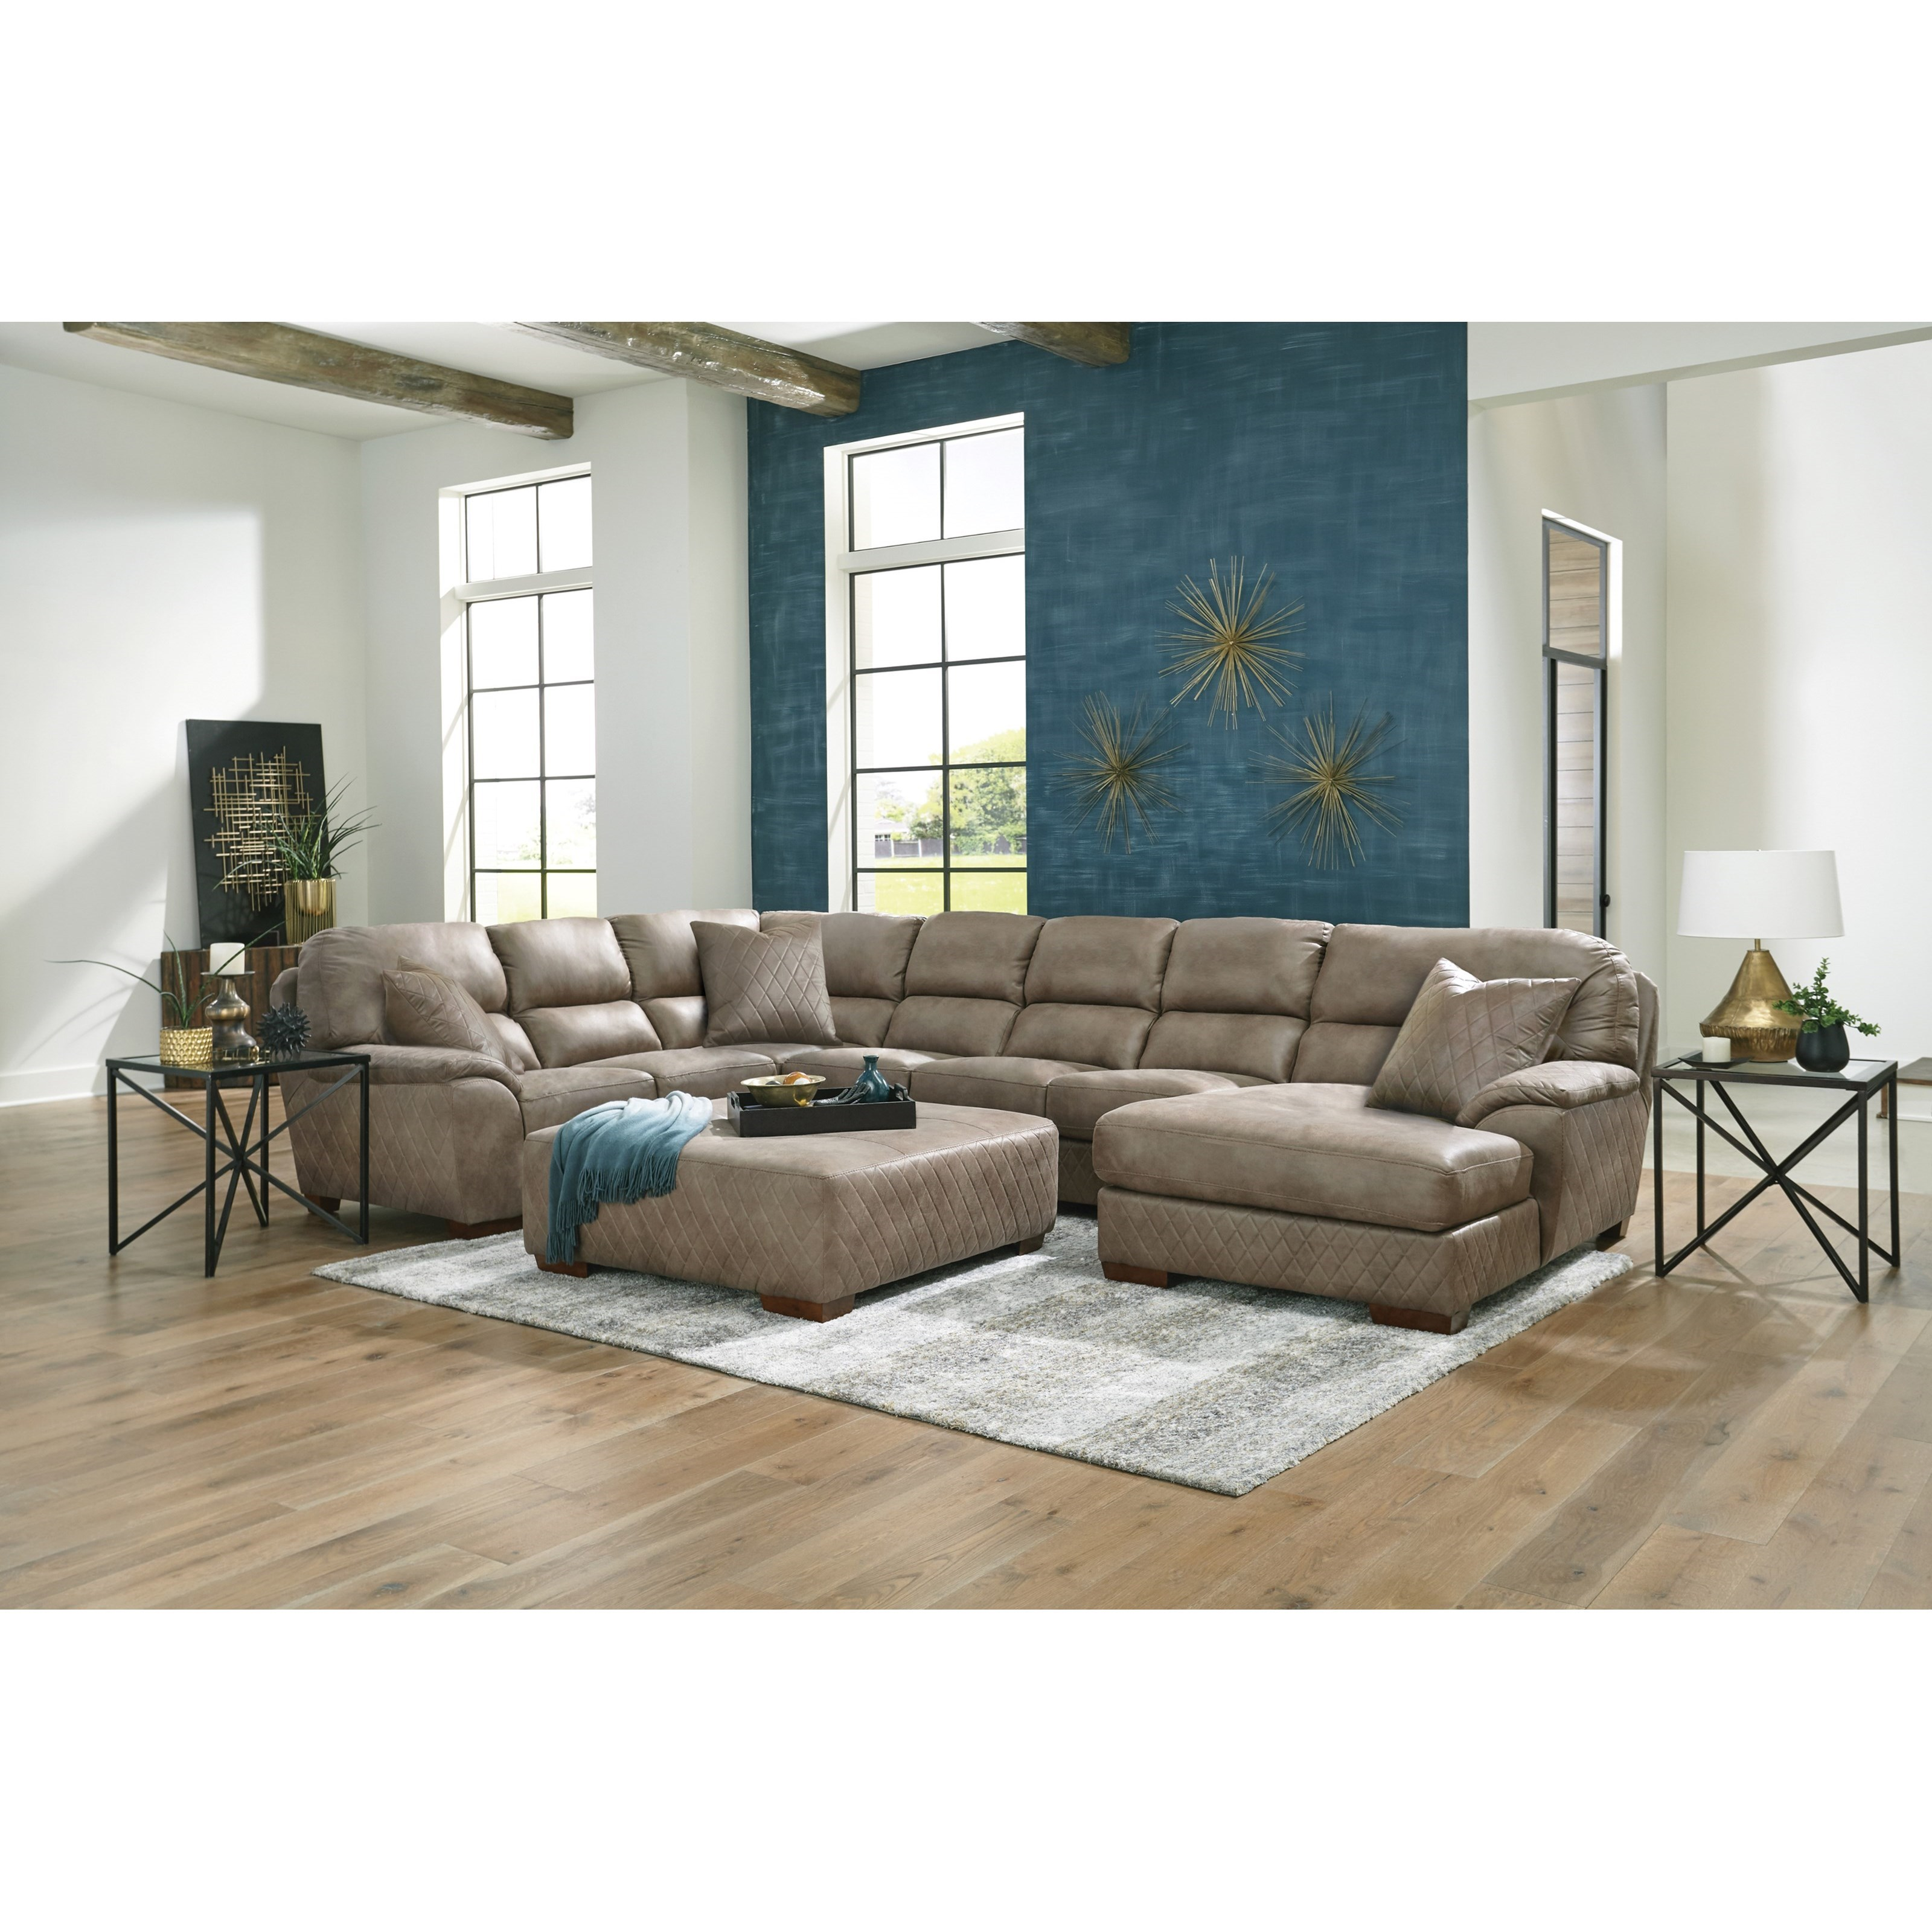 Royce Living Room Group by Jackson Furniture at Northeast Factory Direct